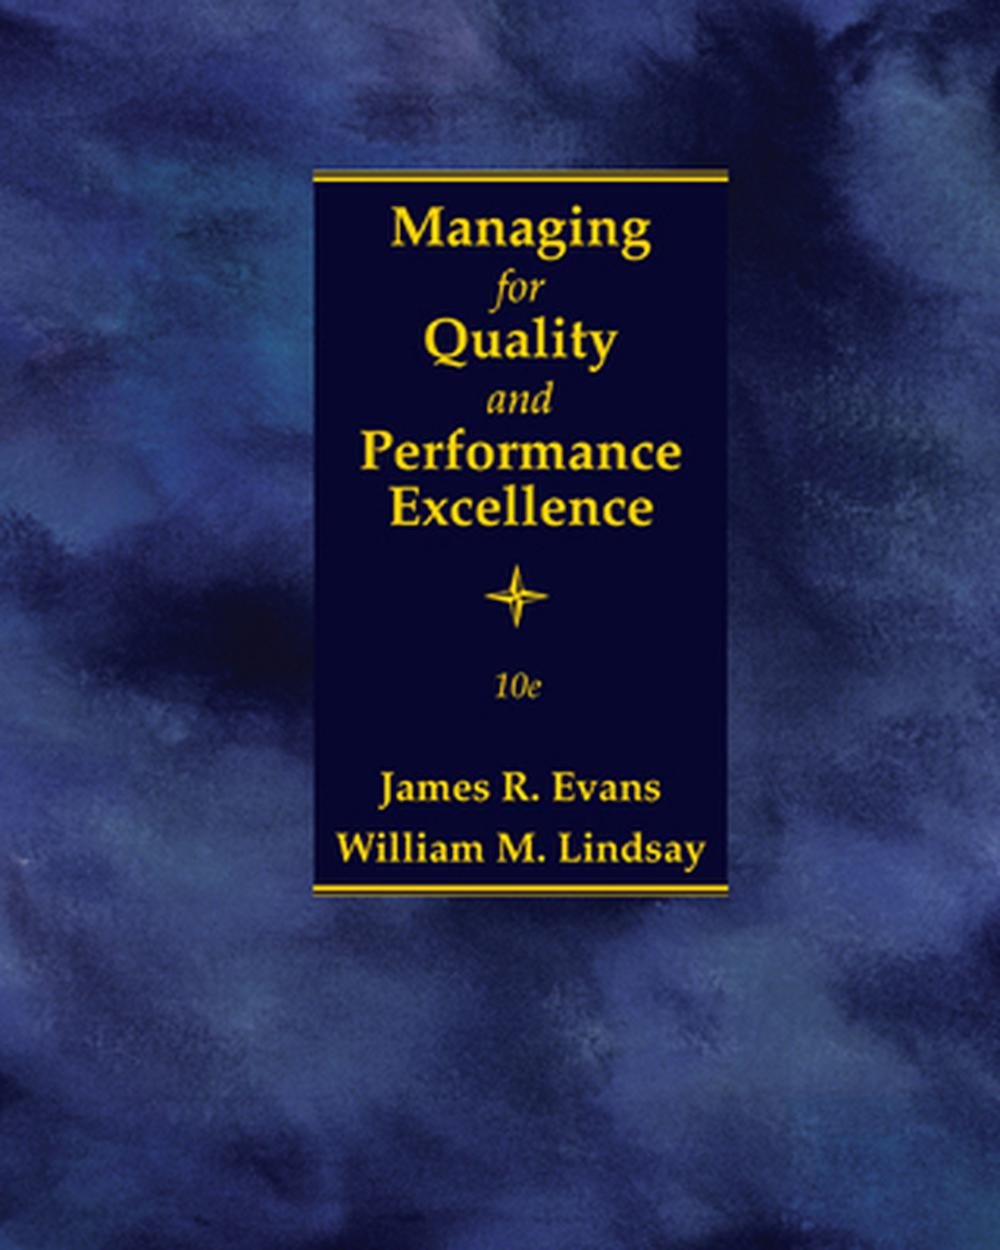 Managing for Quality and Performance Excellence, 10th Edition